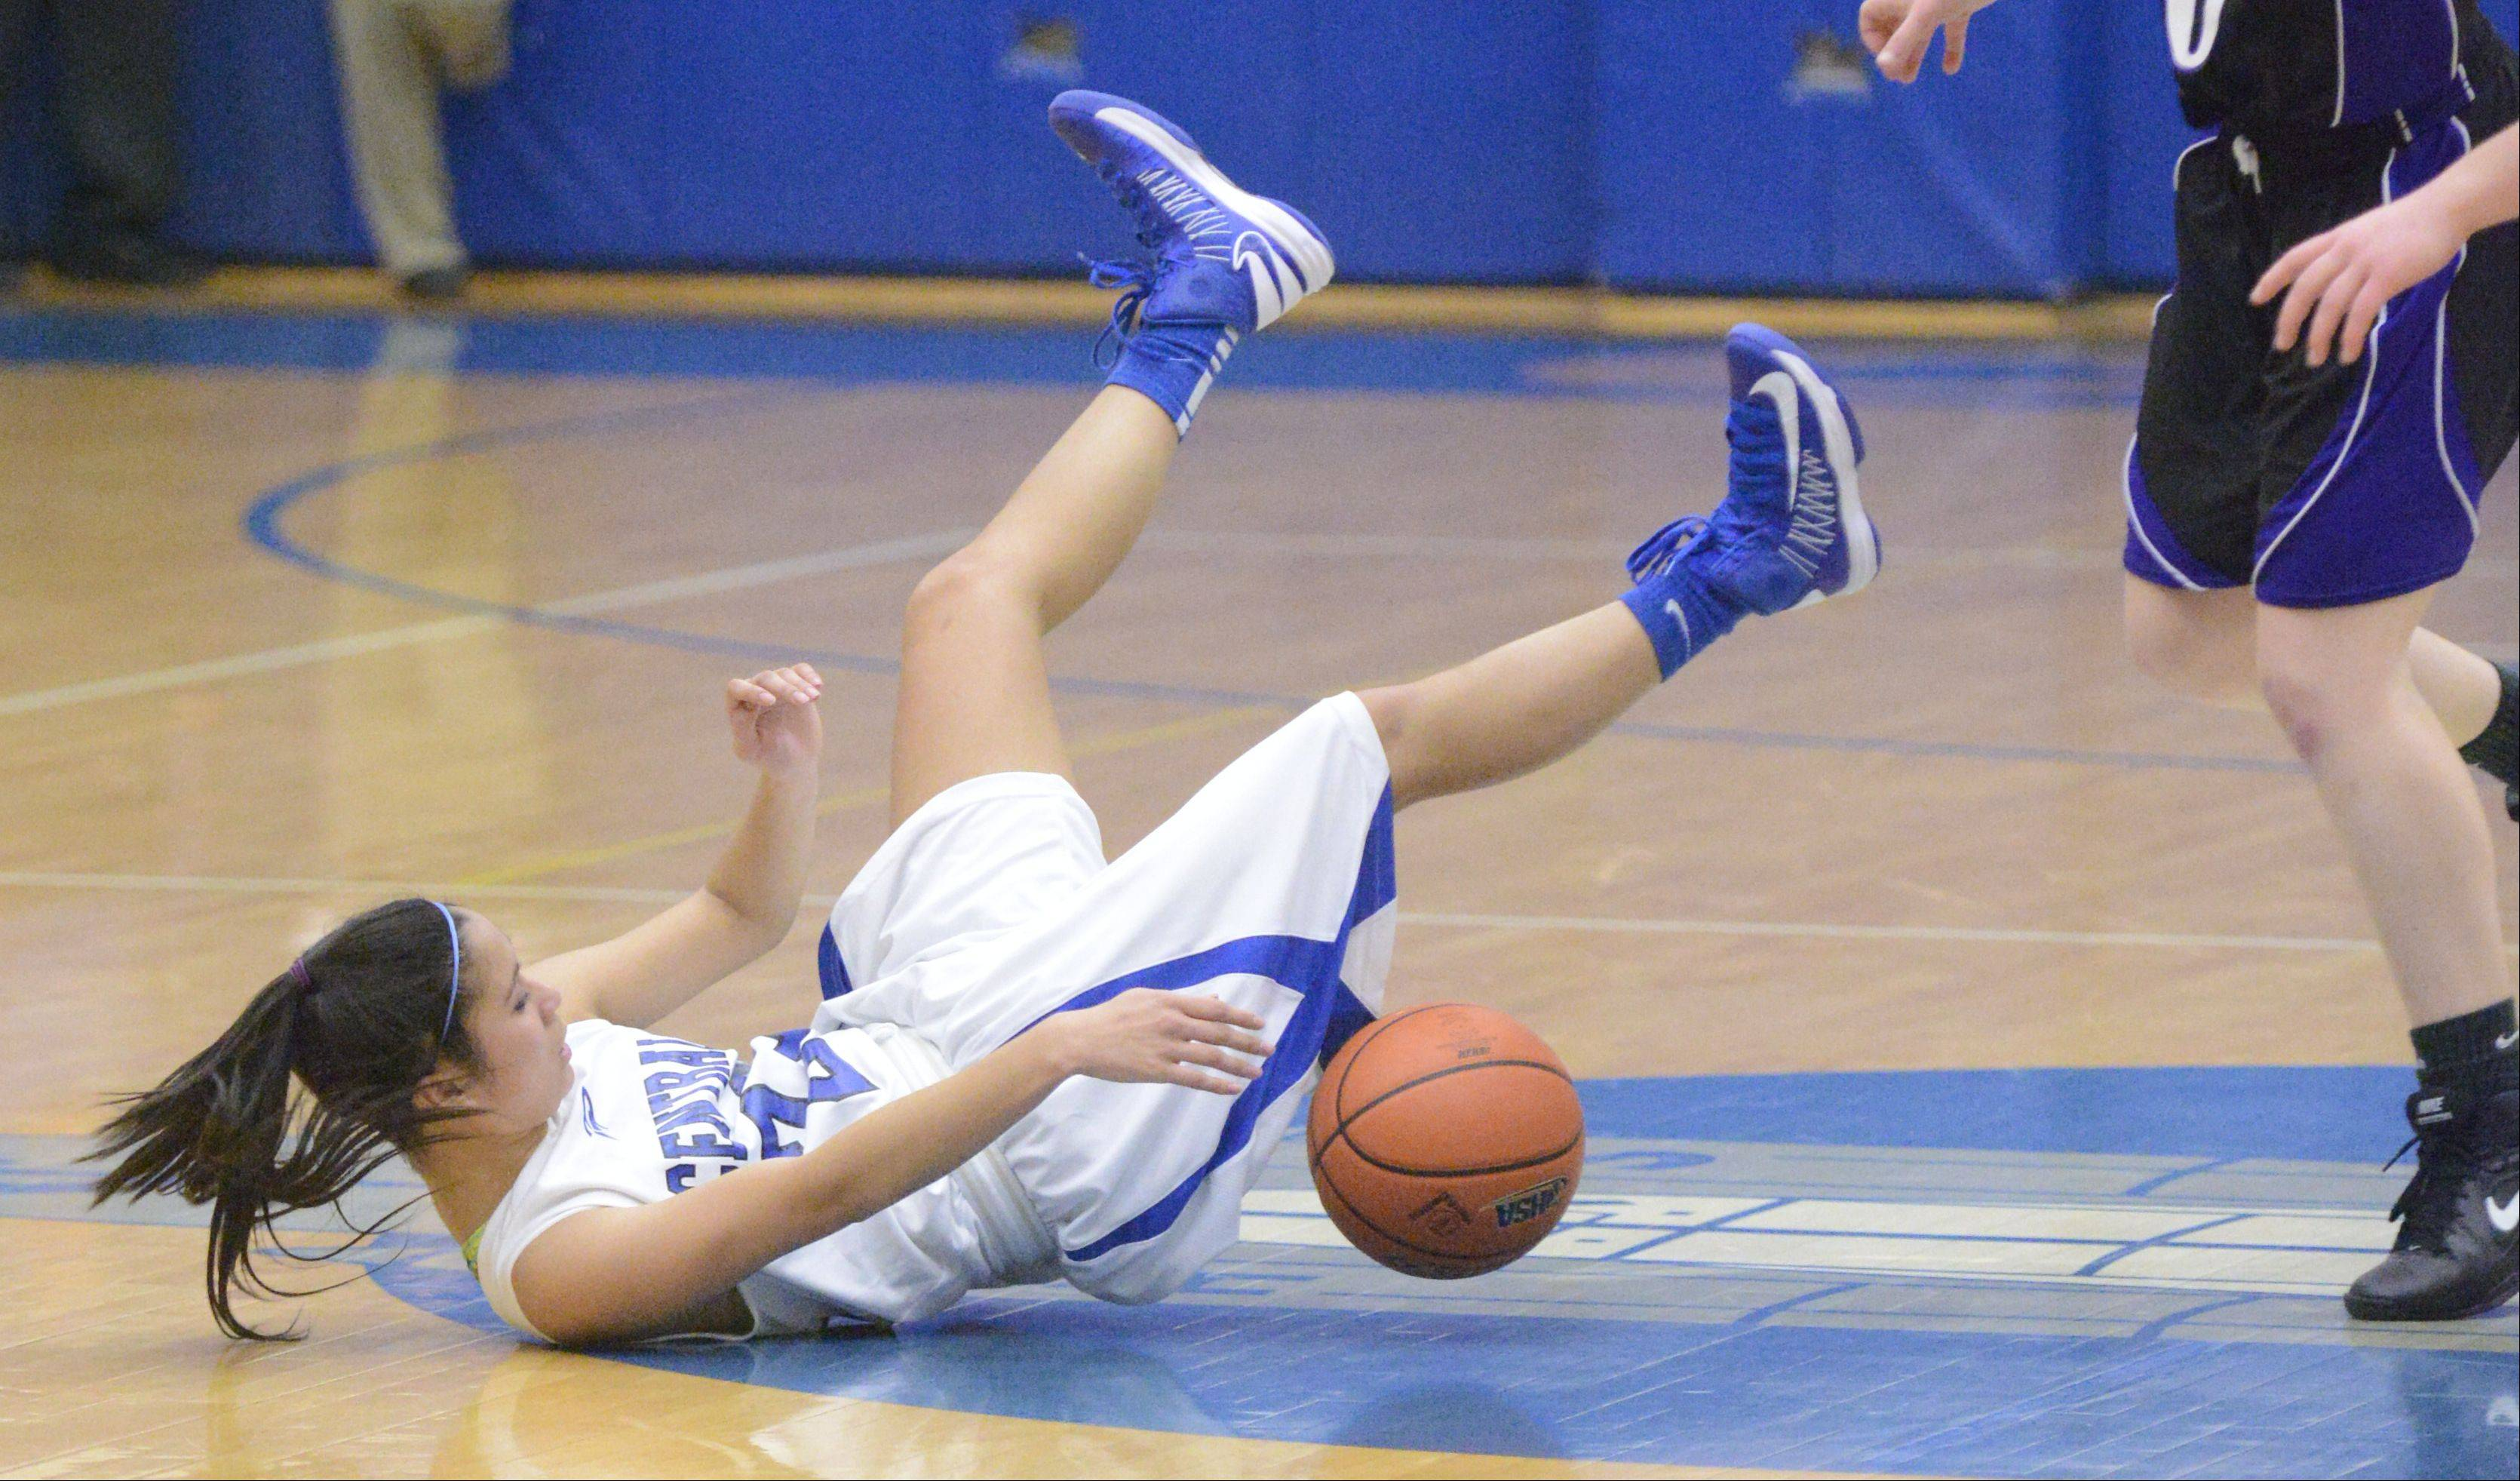 Images: Burlington Central vs. Hampshire, girls basketball